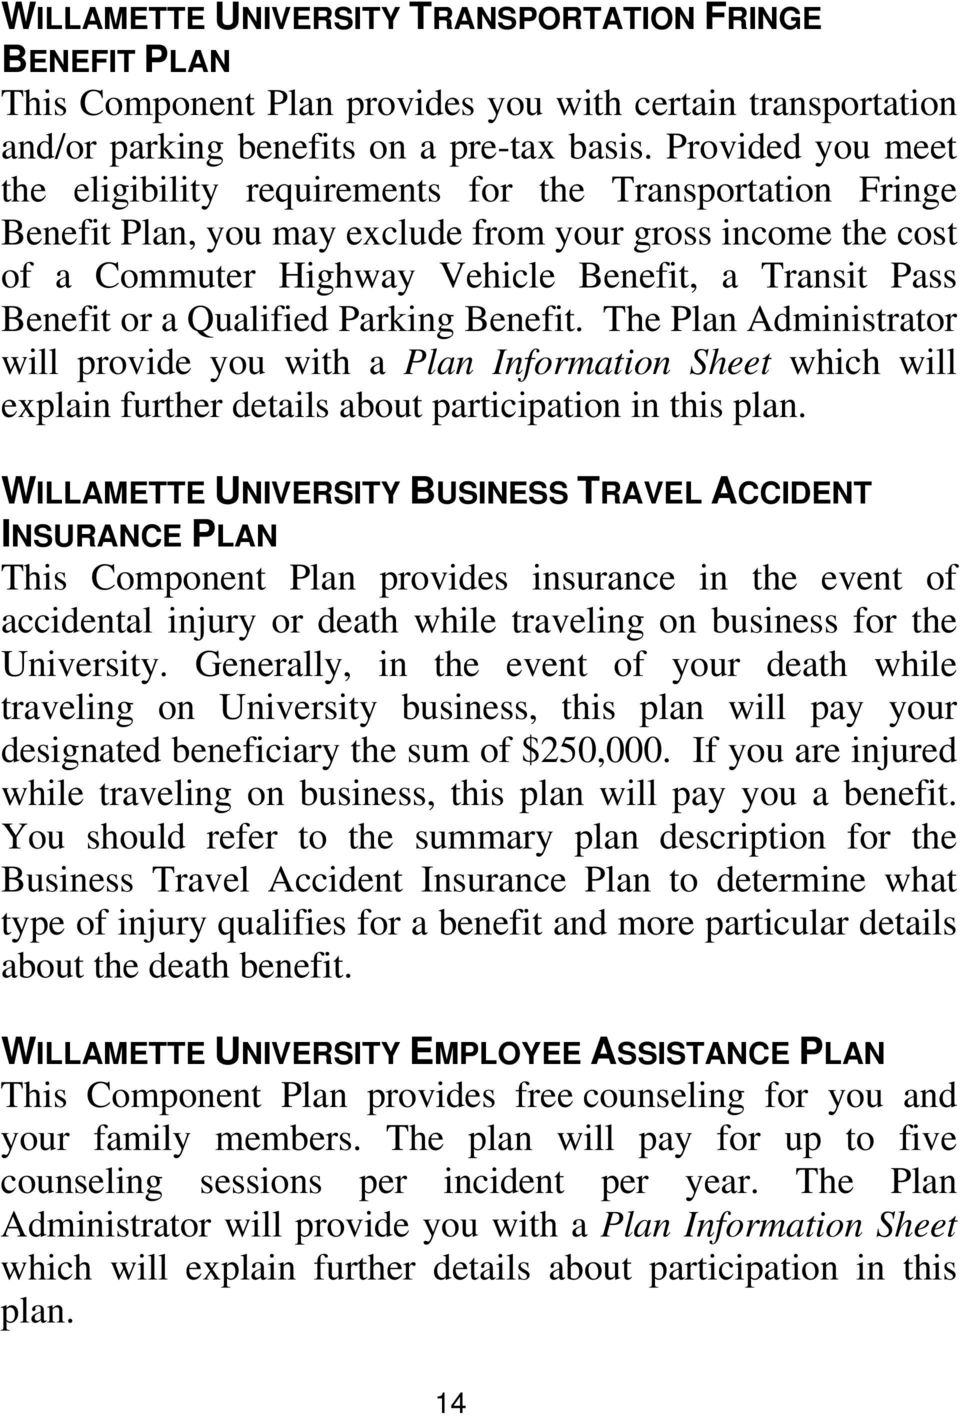 Benefit or a Qualified Parking Benefit. The Plan Administrator will provide you with a Plan Information Sheet which will explain further details about participation in this plan.